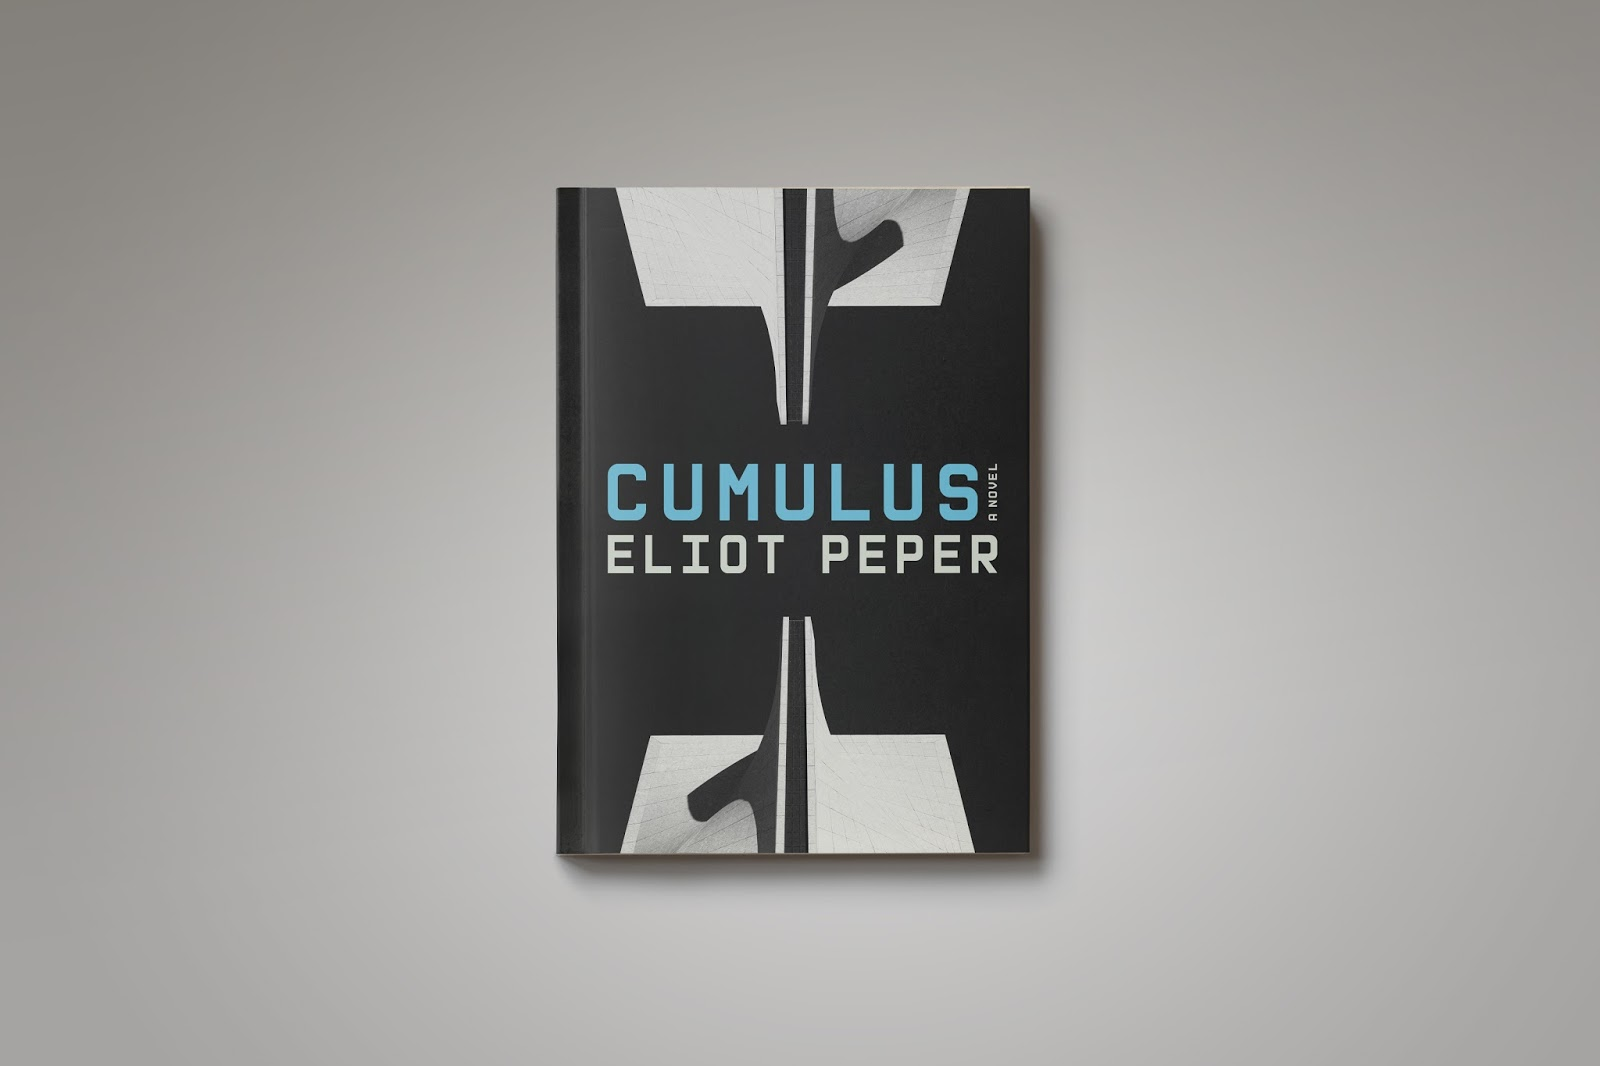 Eliot Peper: Five Things I Learned Self-Publishing My Novel, Cumulus